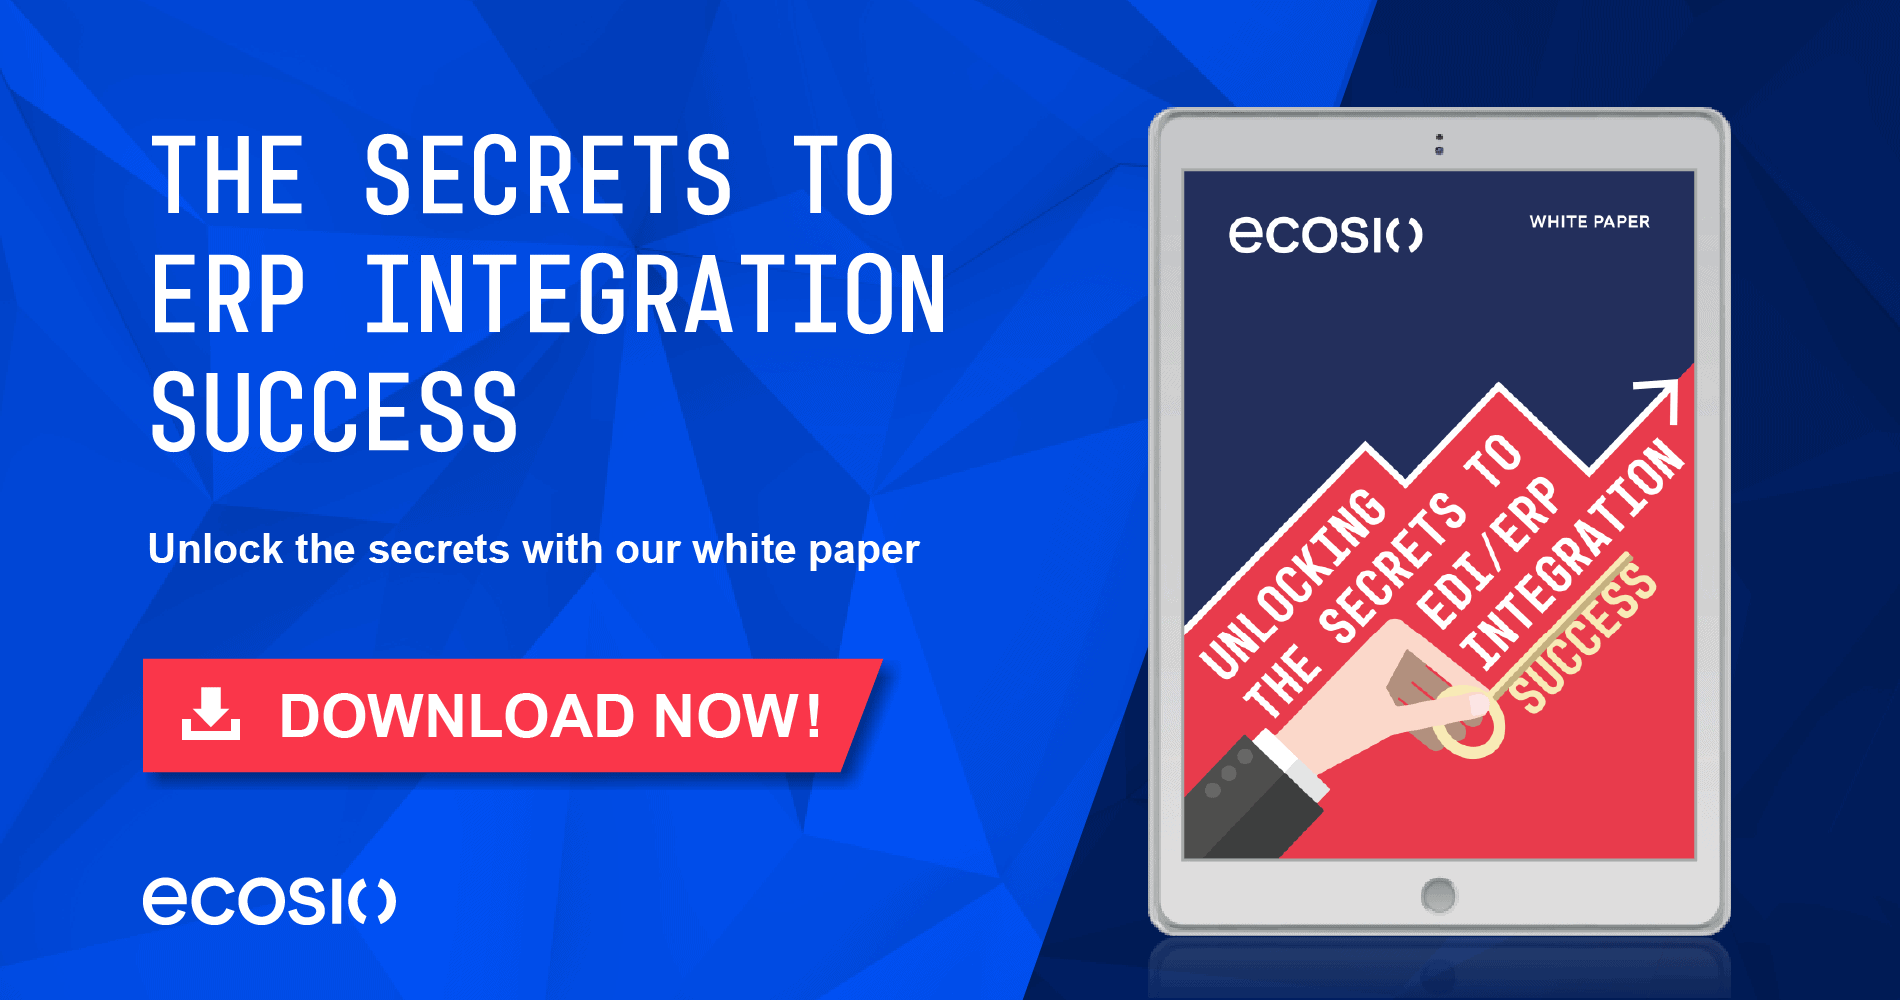 White Paper - Unlocking The Secrets to Successful EDI-ERP Integration